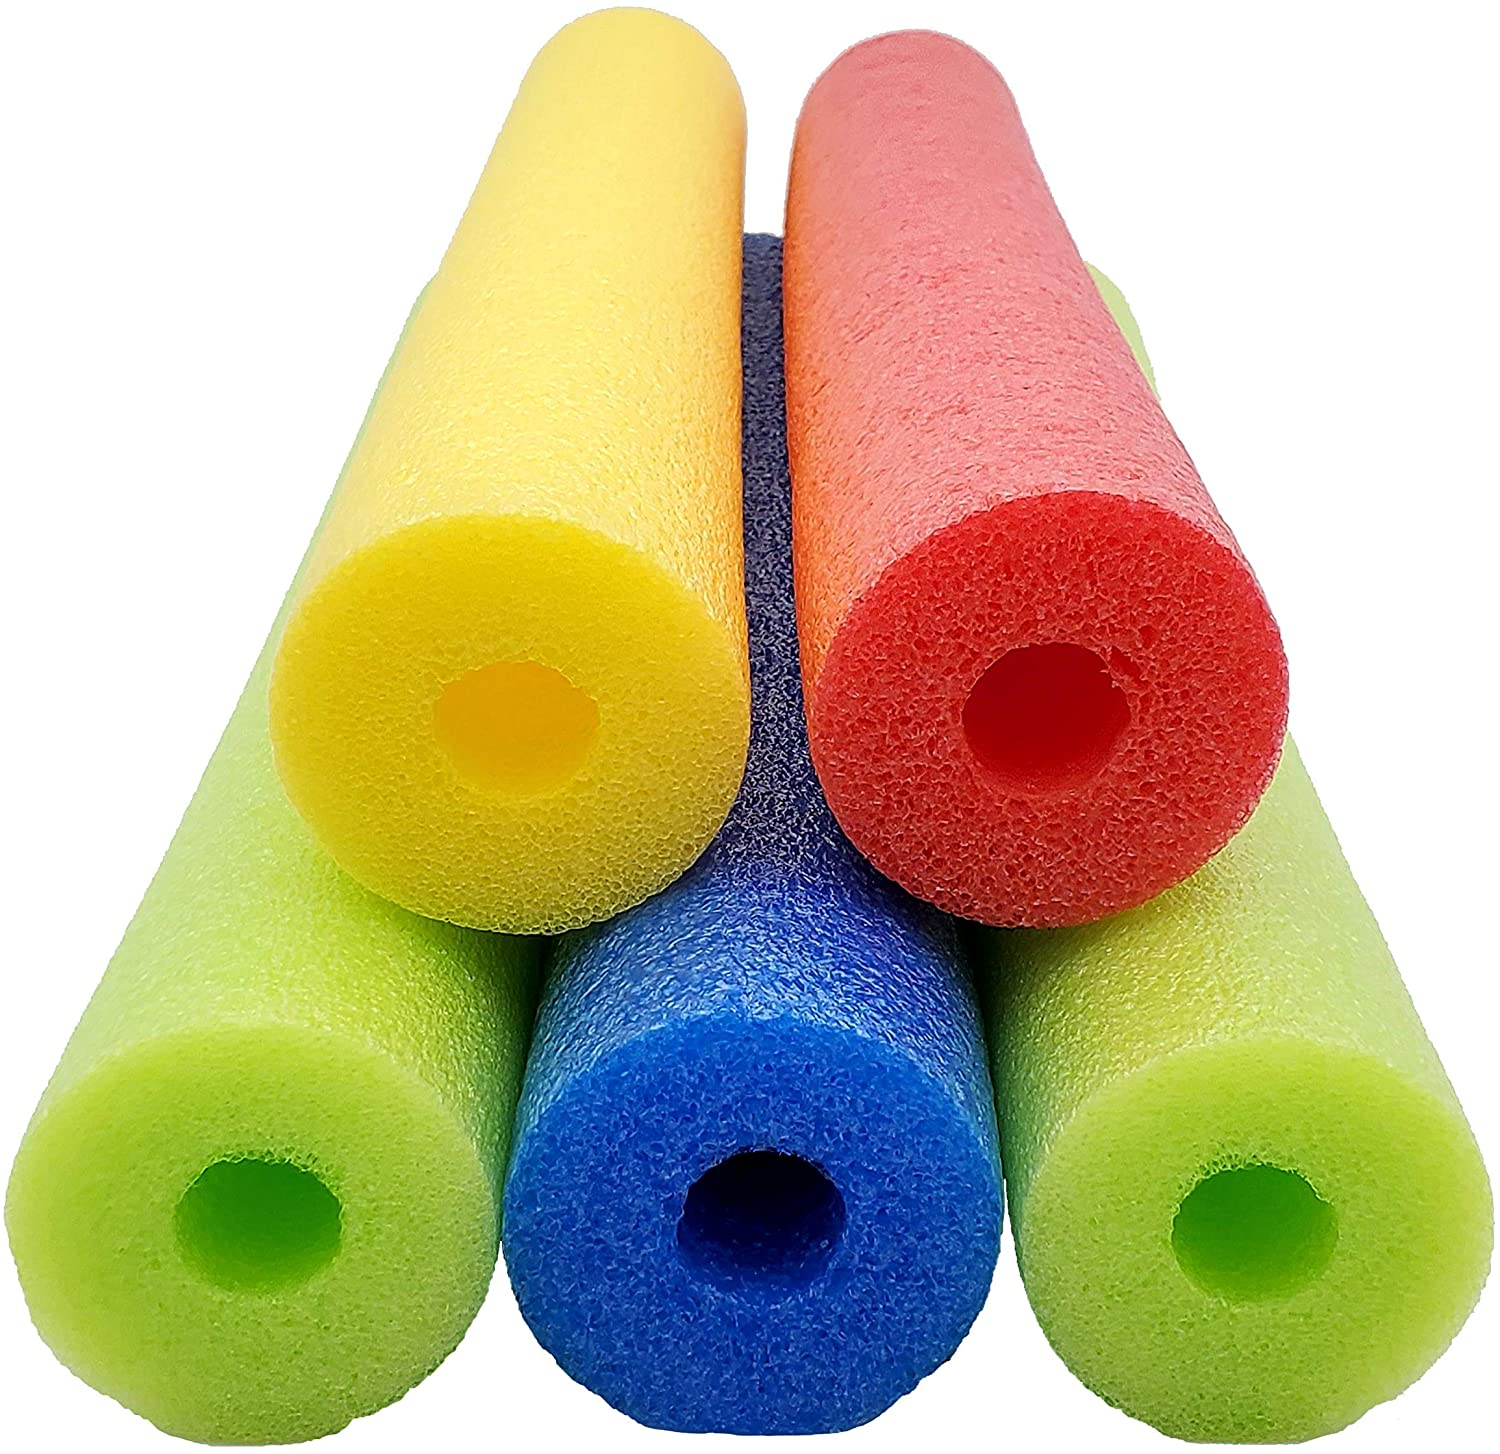 Fix Find - Pool Noodles - (Best for Softness) Amazon's Choice